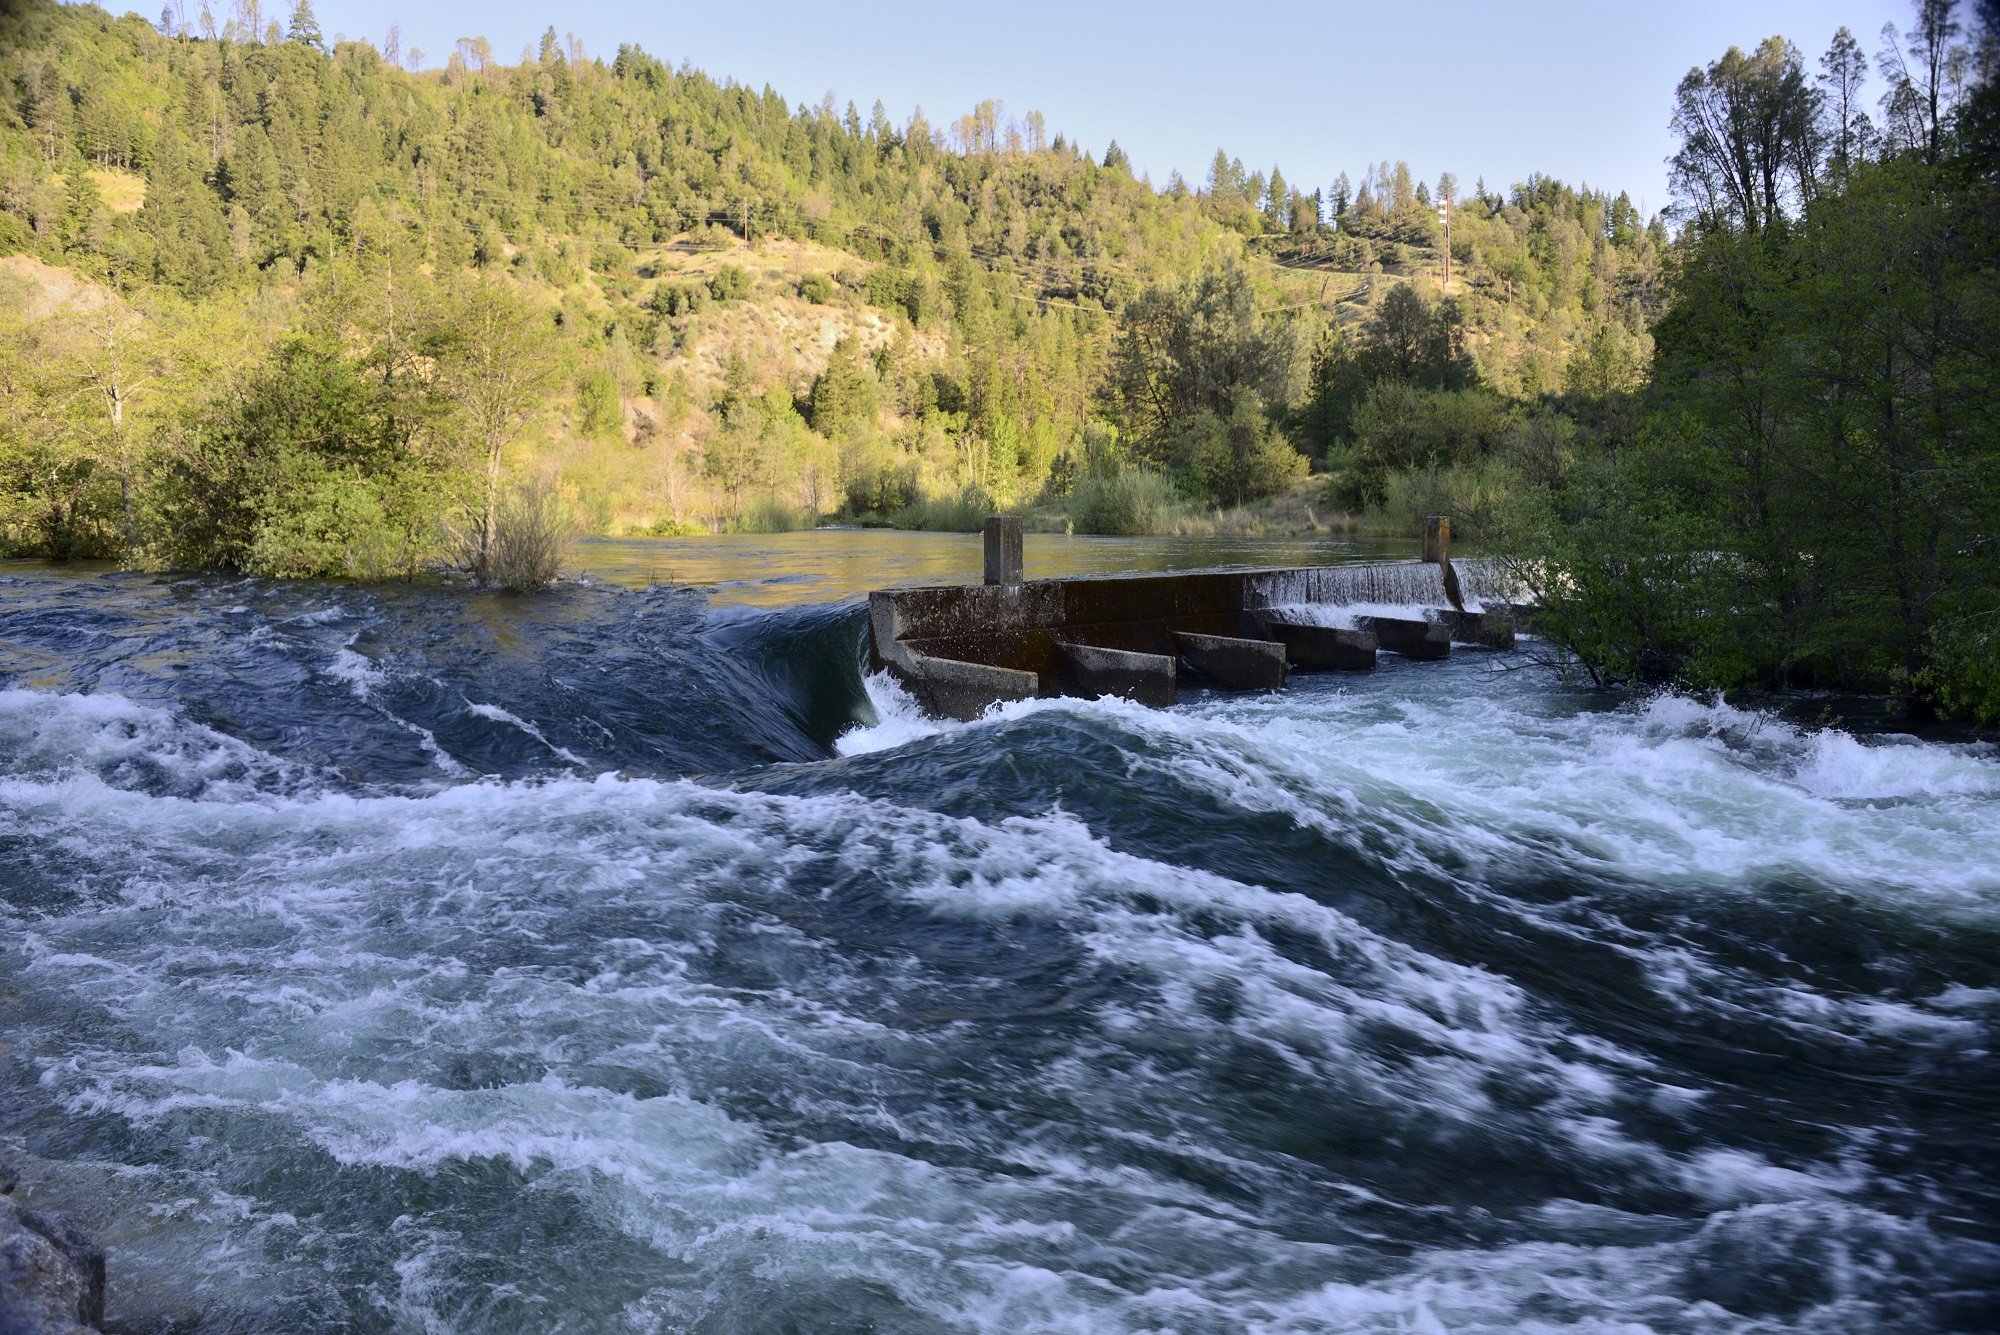 Trinity River flows in the summer of 2014 at the weir near Lewiston, CA. Photo by Kenneth DeCamp